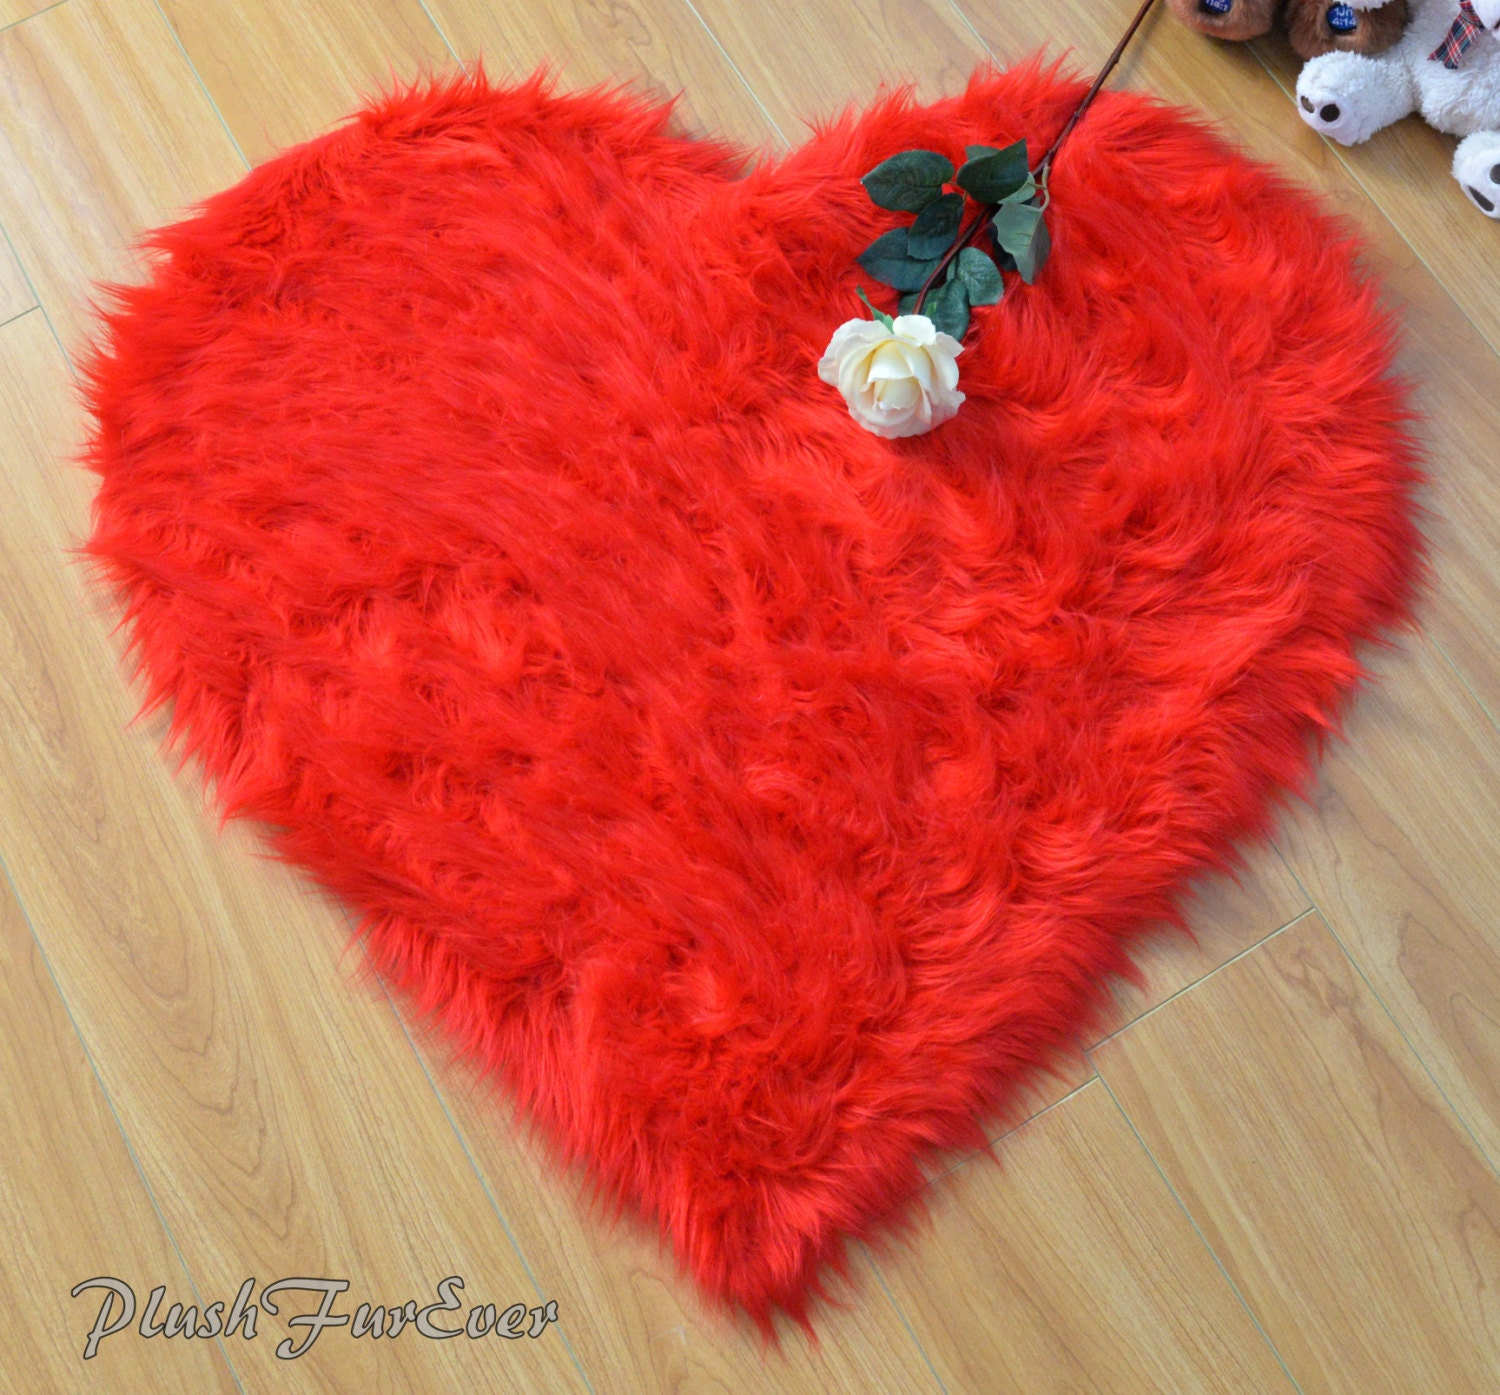 Special 30 OFF Valentine Promo 5' Or 60 Diameter Heart